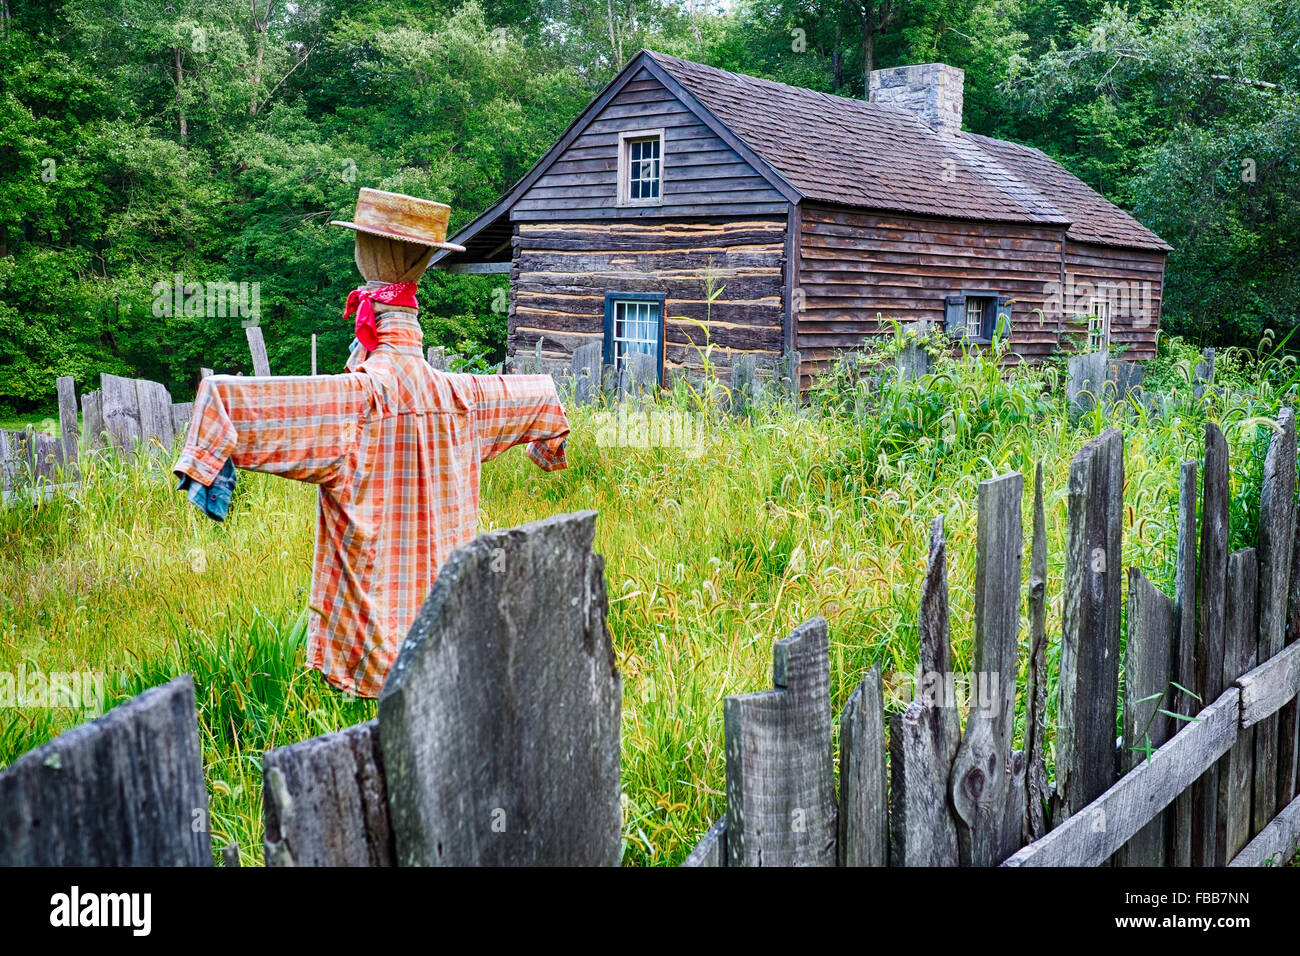 Old Farmhouse with a Scarecrow, Waterloo Historic Village, Stanhope, New Jersey - Stock Image